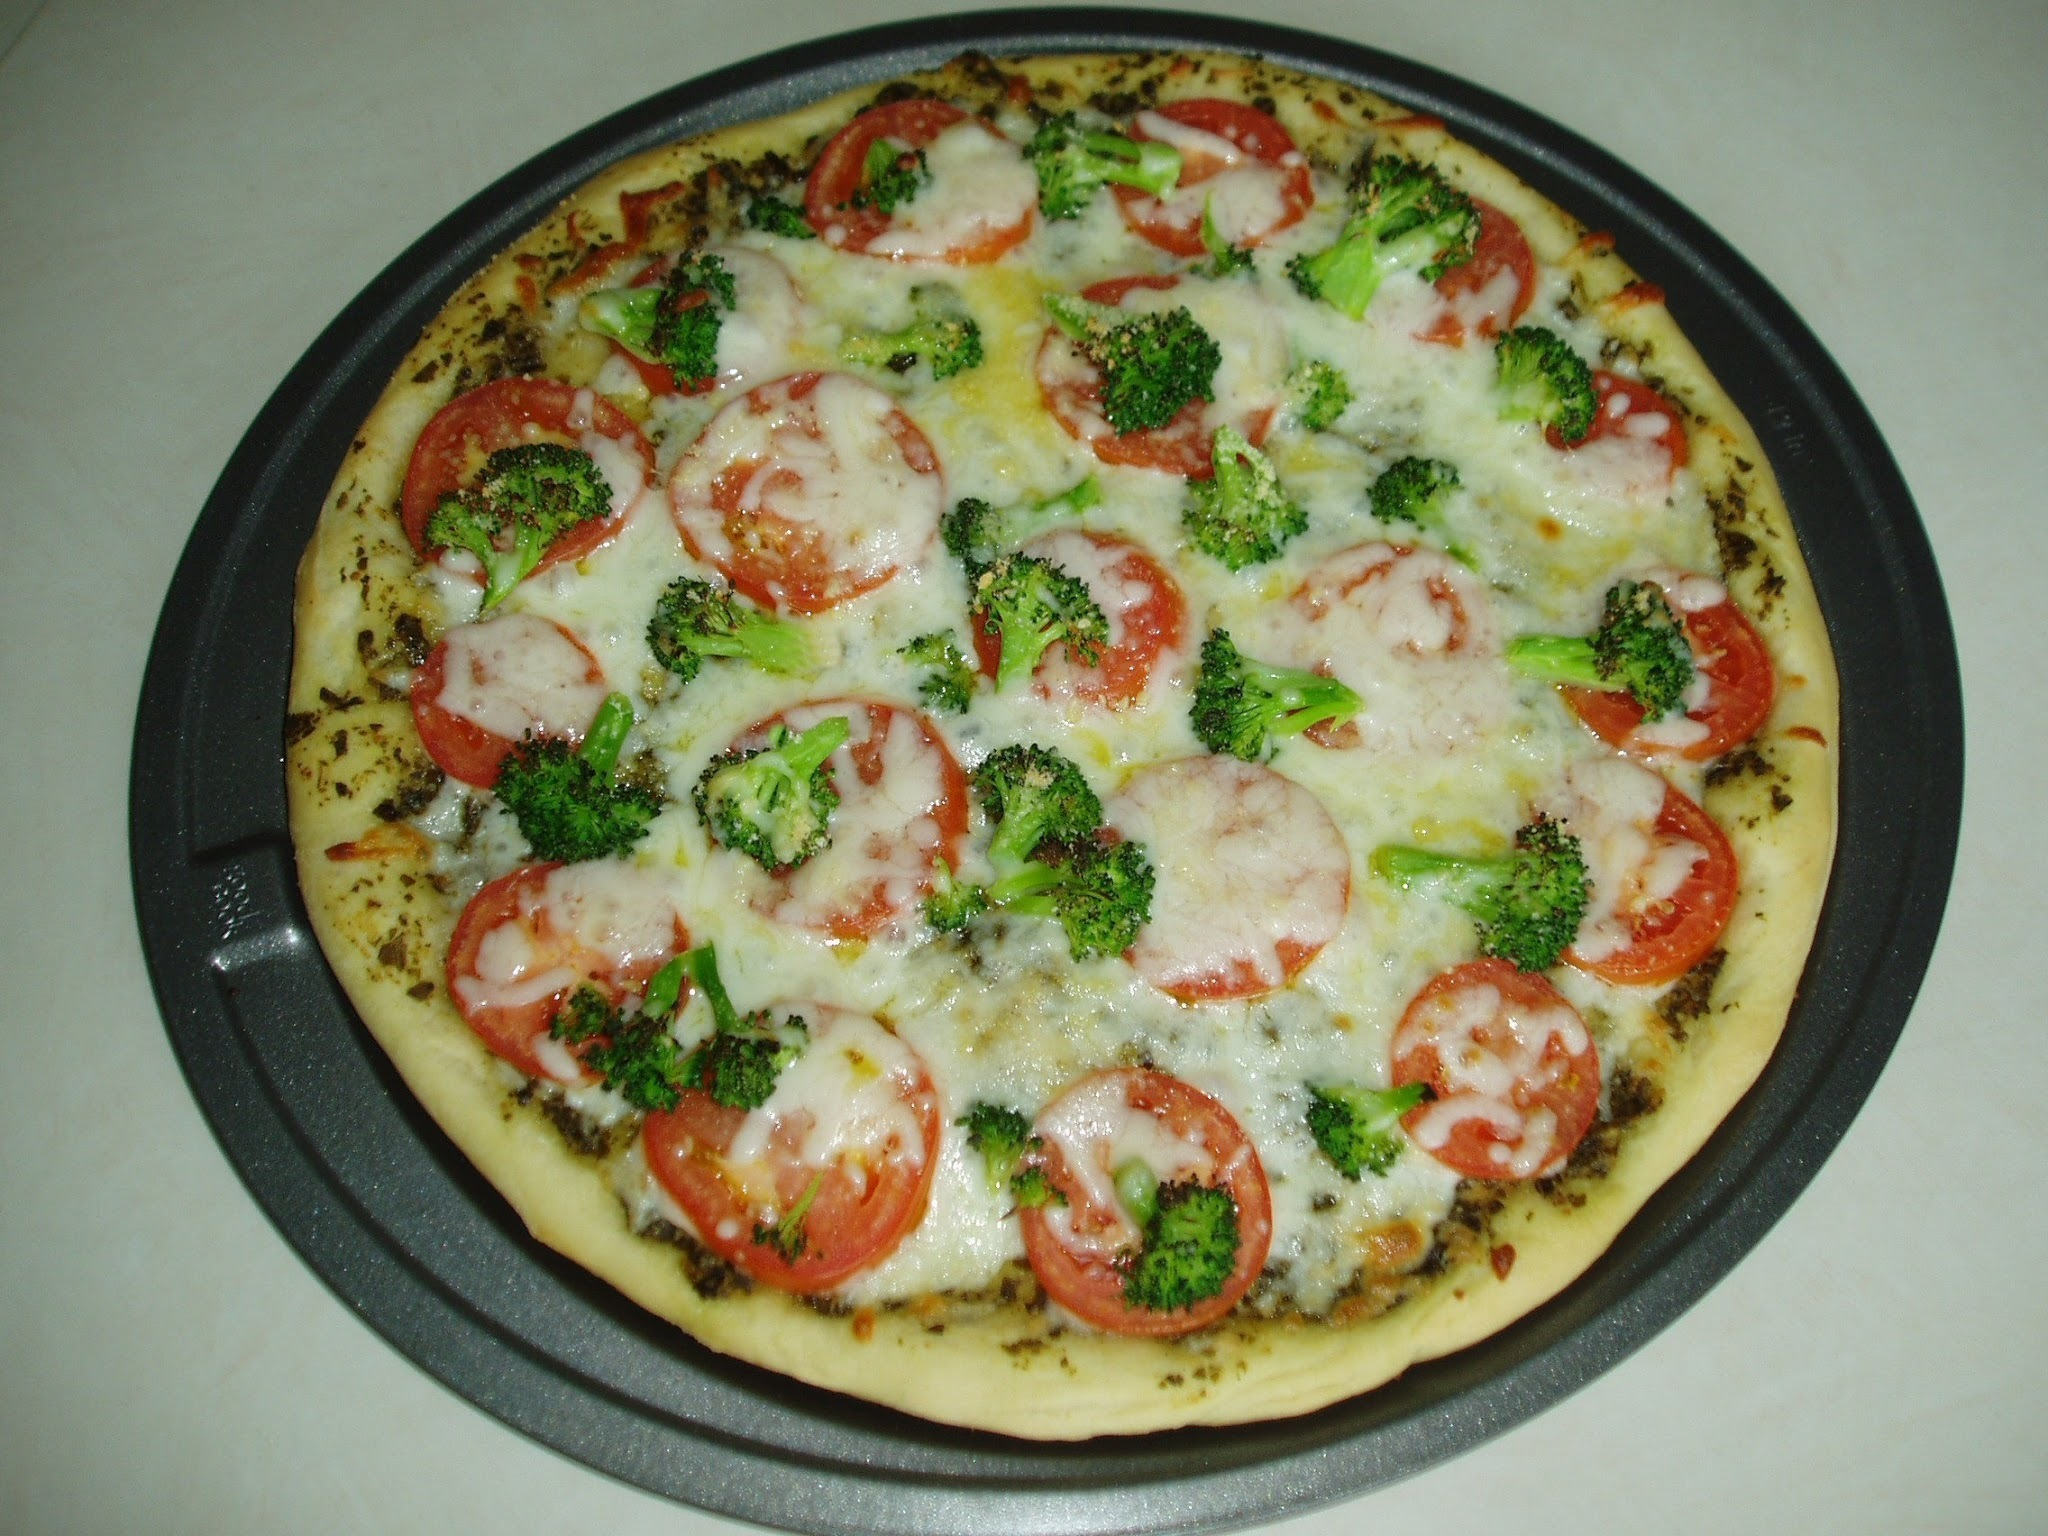 Pesto Pizza with Tomatoes and Broccoli (12-inch)